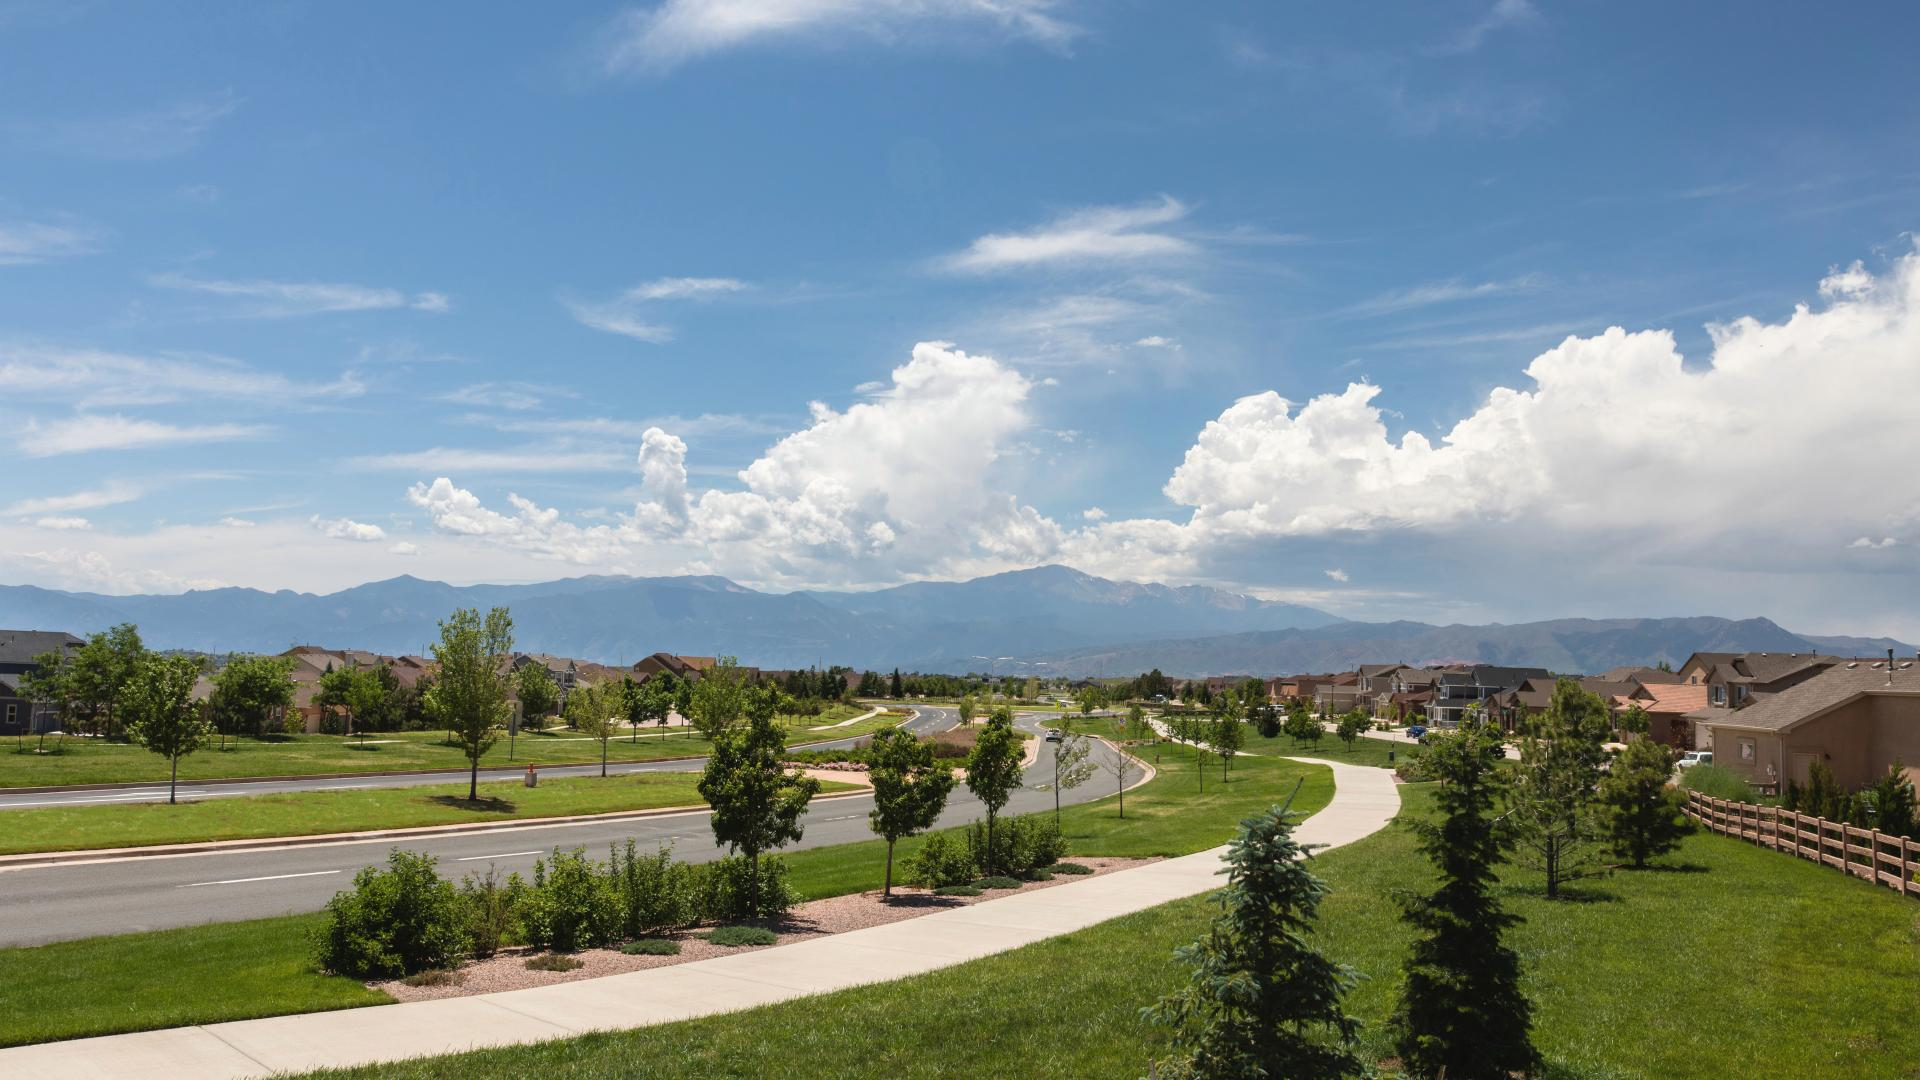 Breathtaking Rocky Mountain views can be seen throughout the community